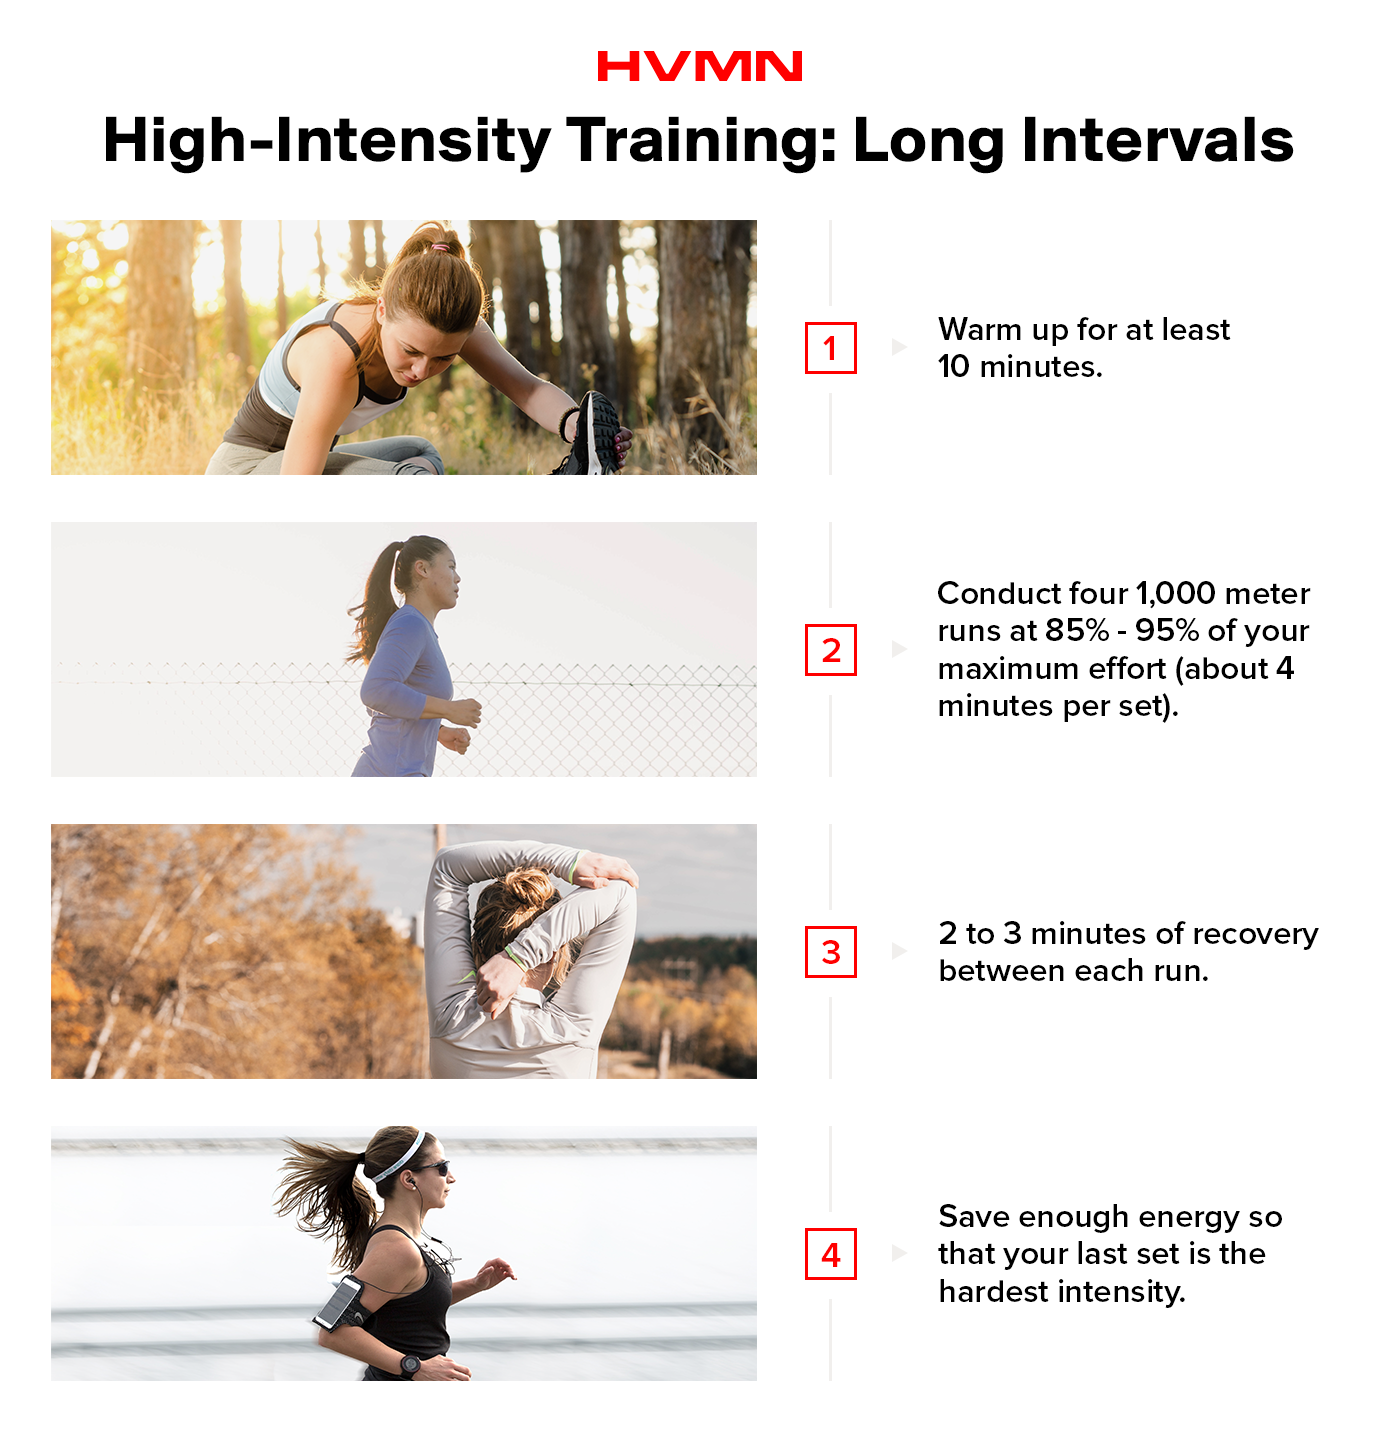 A guide to high-intensity training for long intervals. Women runners show these steps, which are sprints with timed rests between.